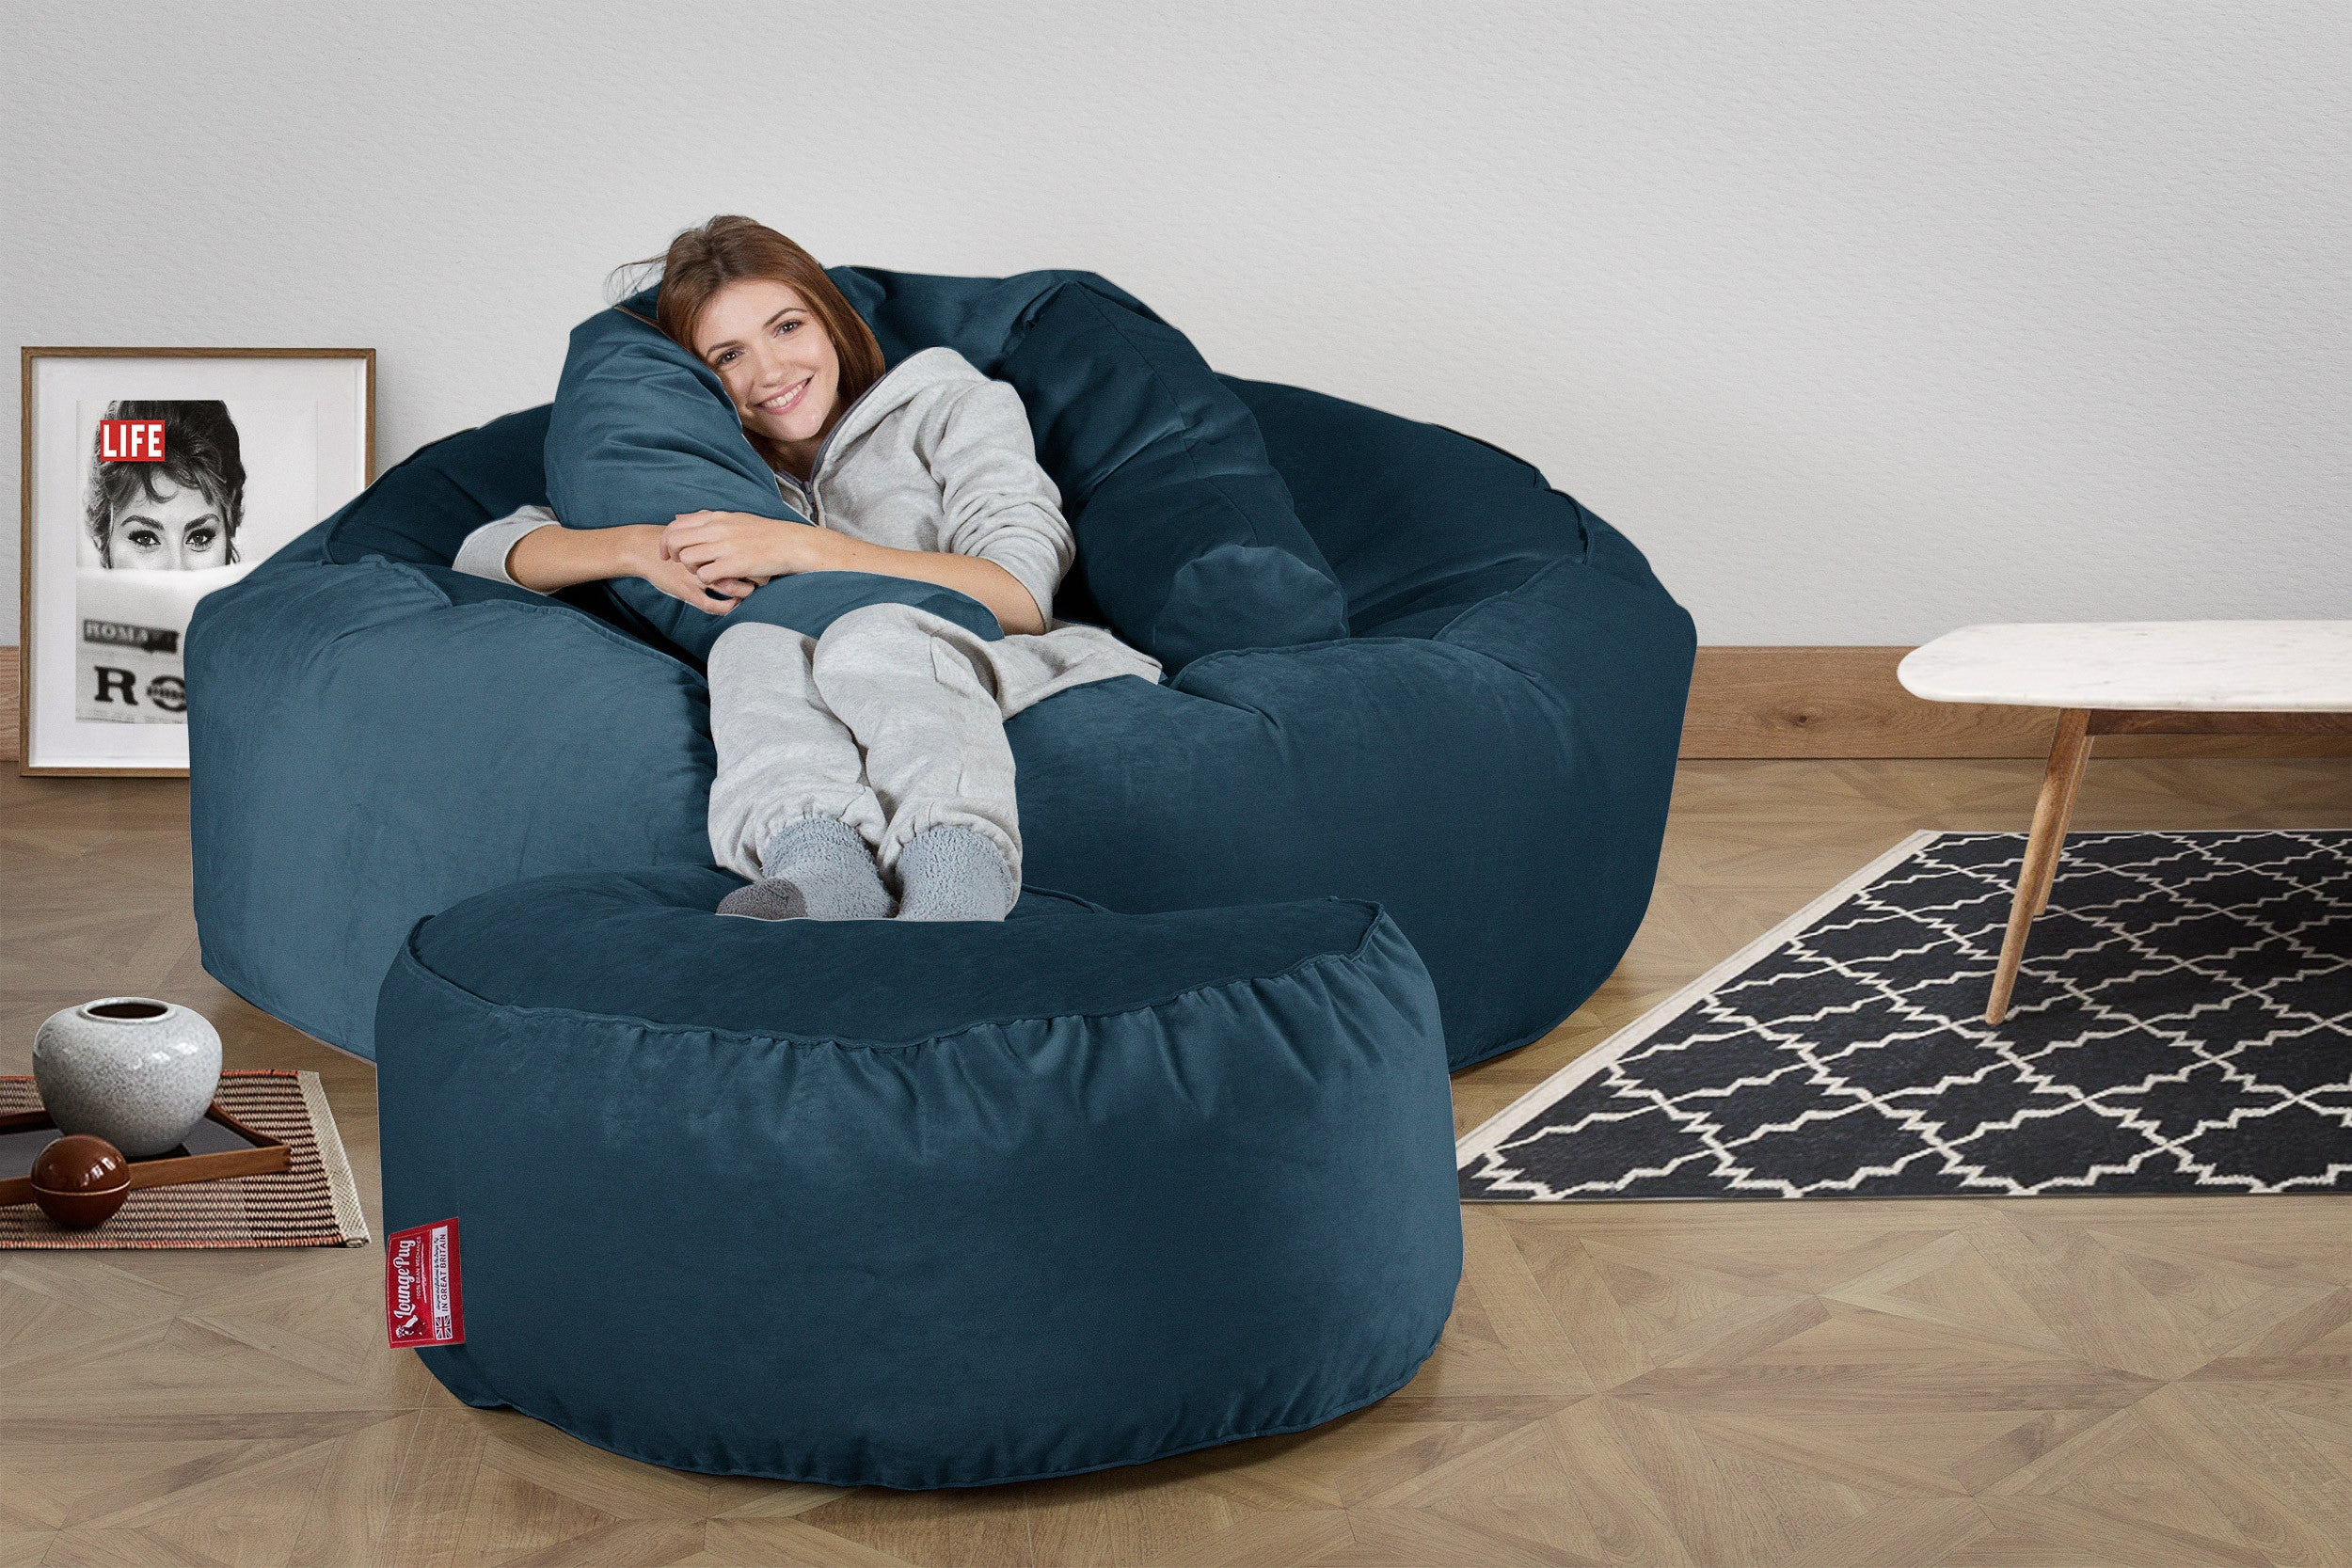 Mega Mammoth Bean Bag Sofa - Velvet Midnight Blue